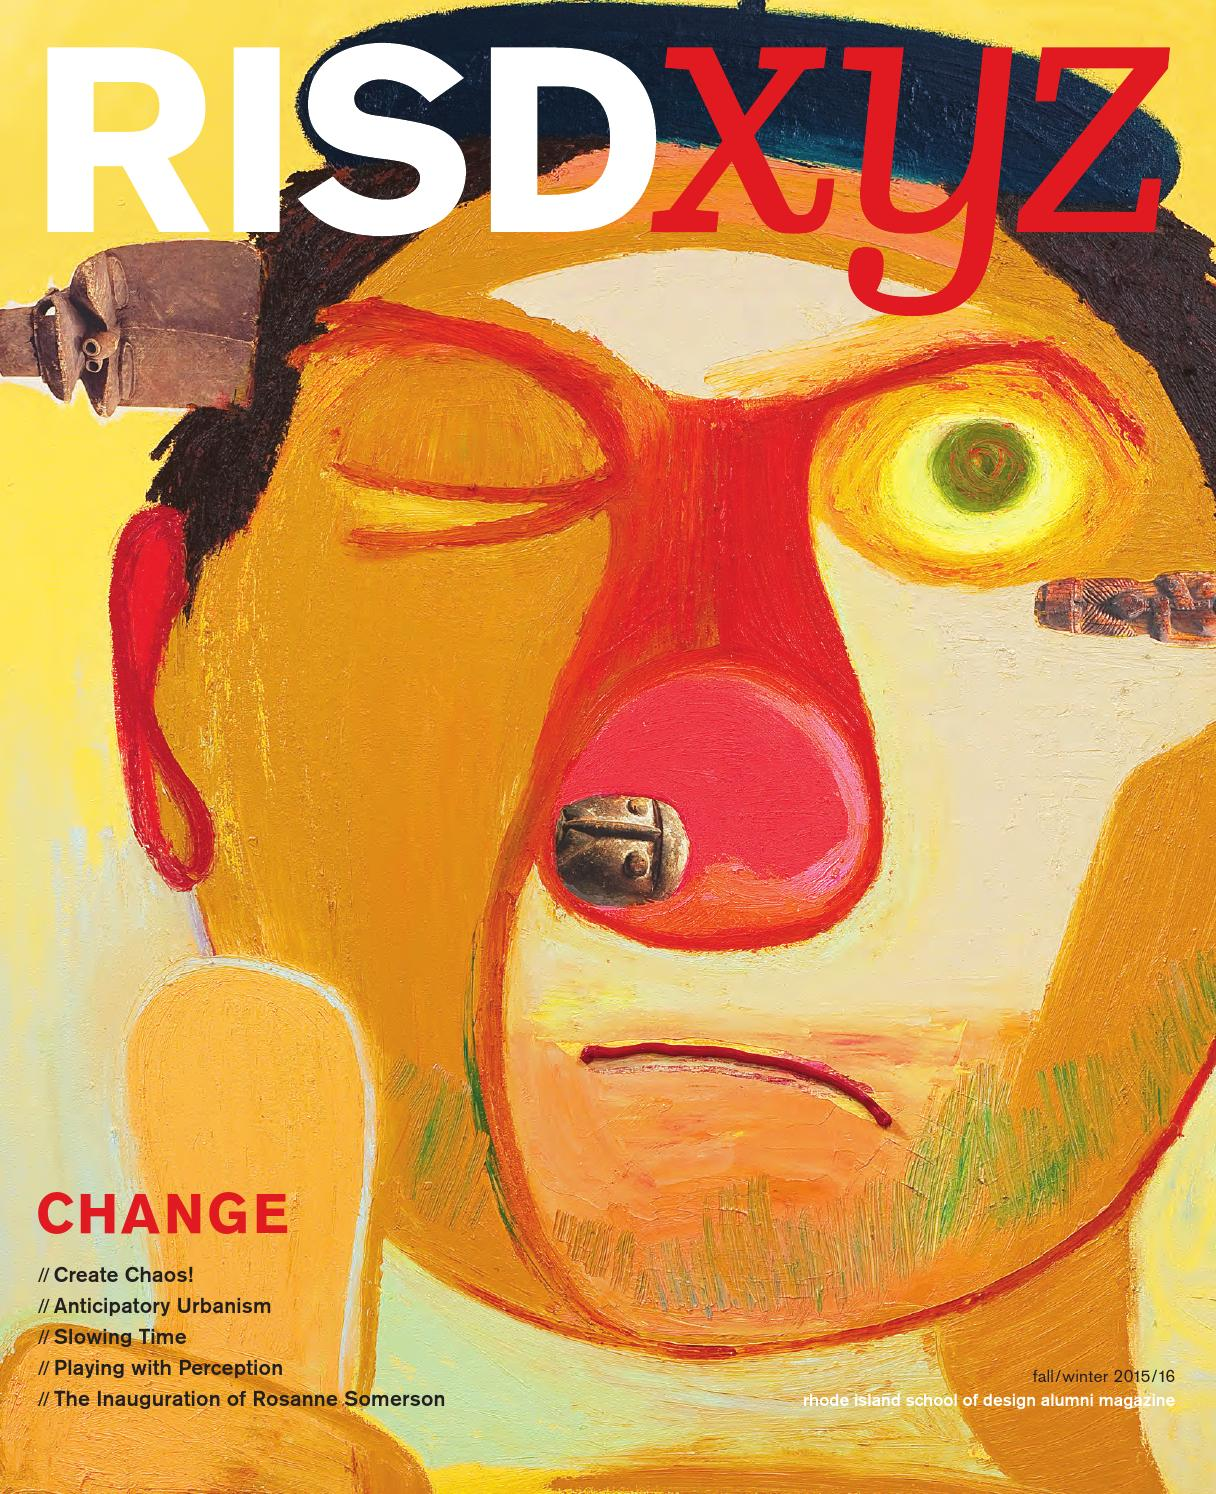 RISD XYZ Fall/Winter 2015/16 by Rhode Island School of